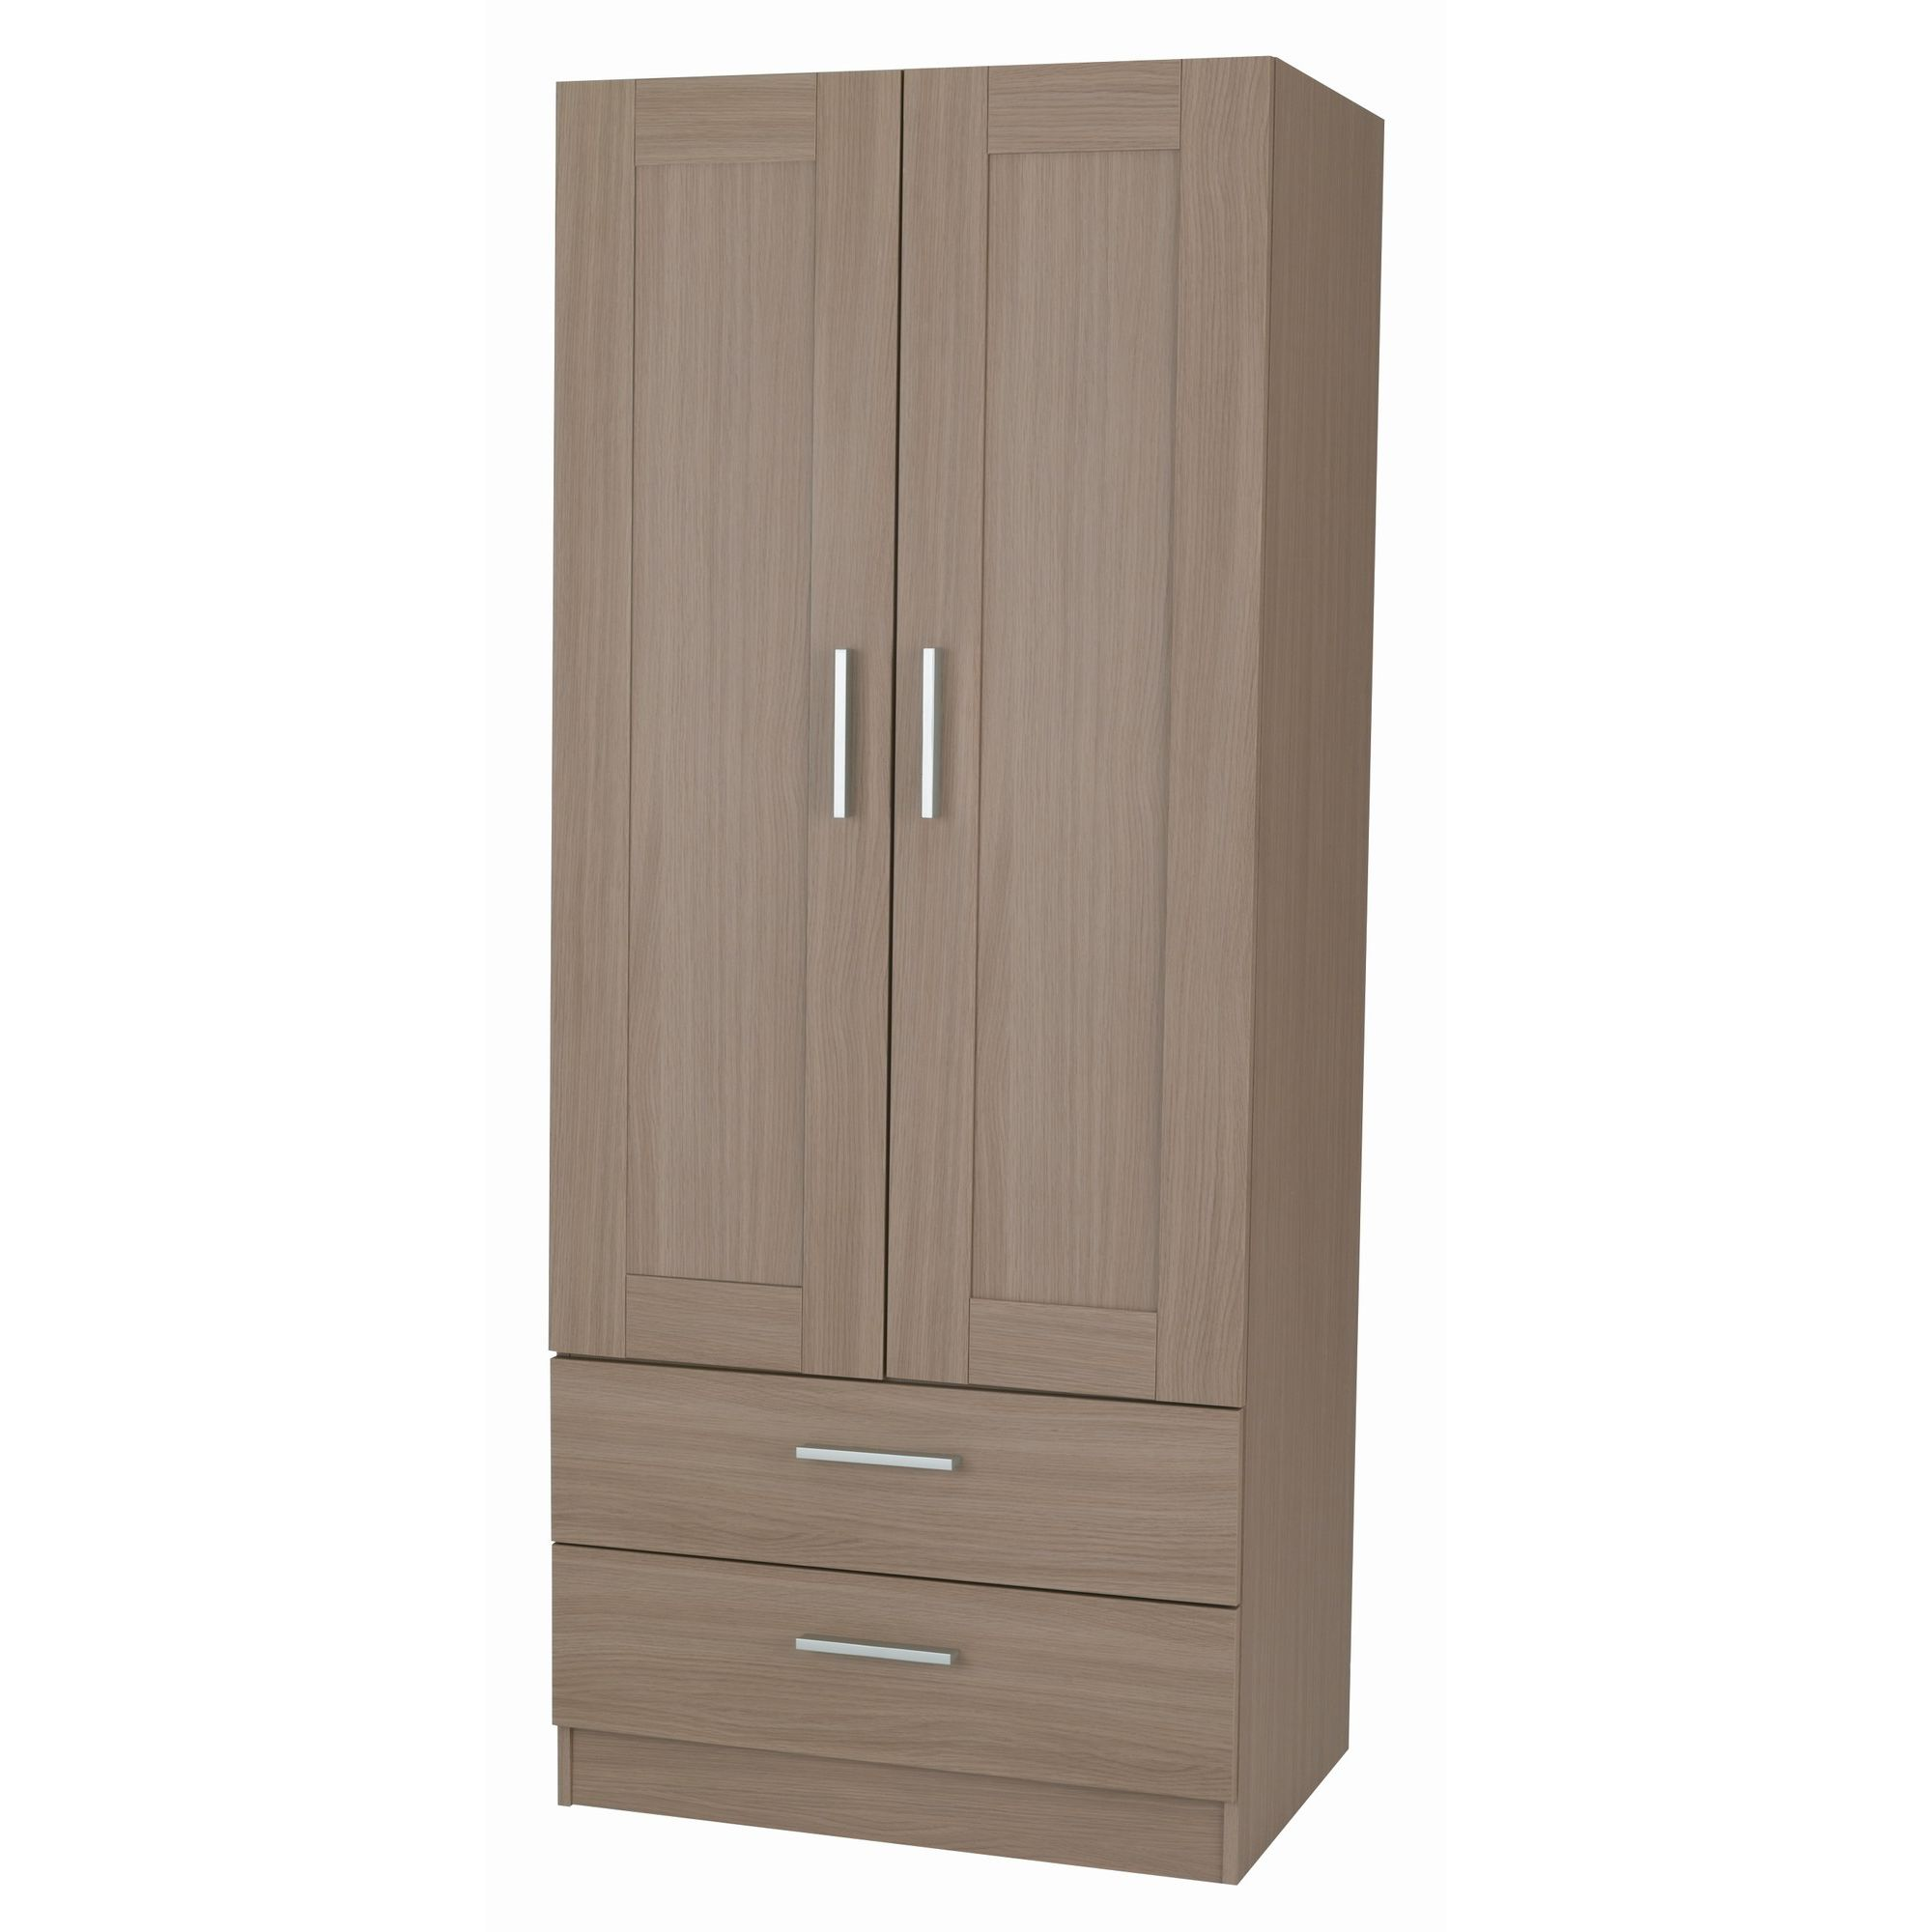 Alto Furniture Visualise Shaker Combi Two Drawer Wardrobe in Veradi Oak at Tescos Direct